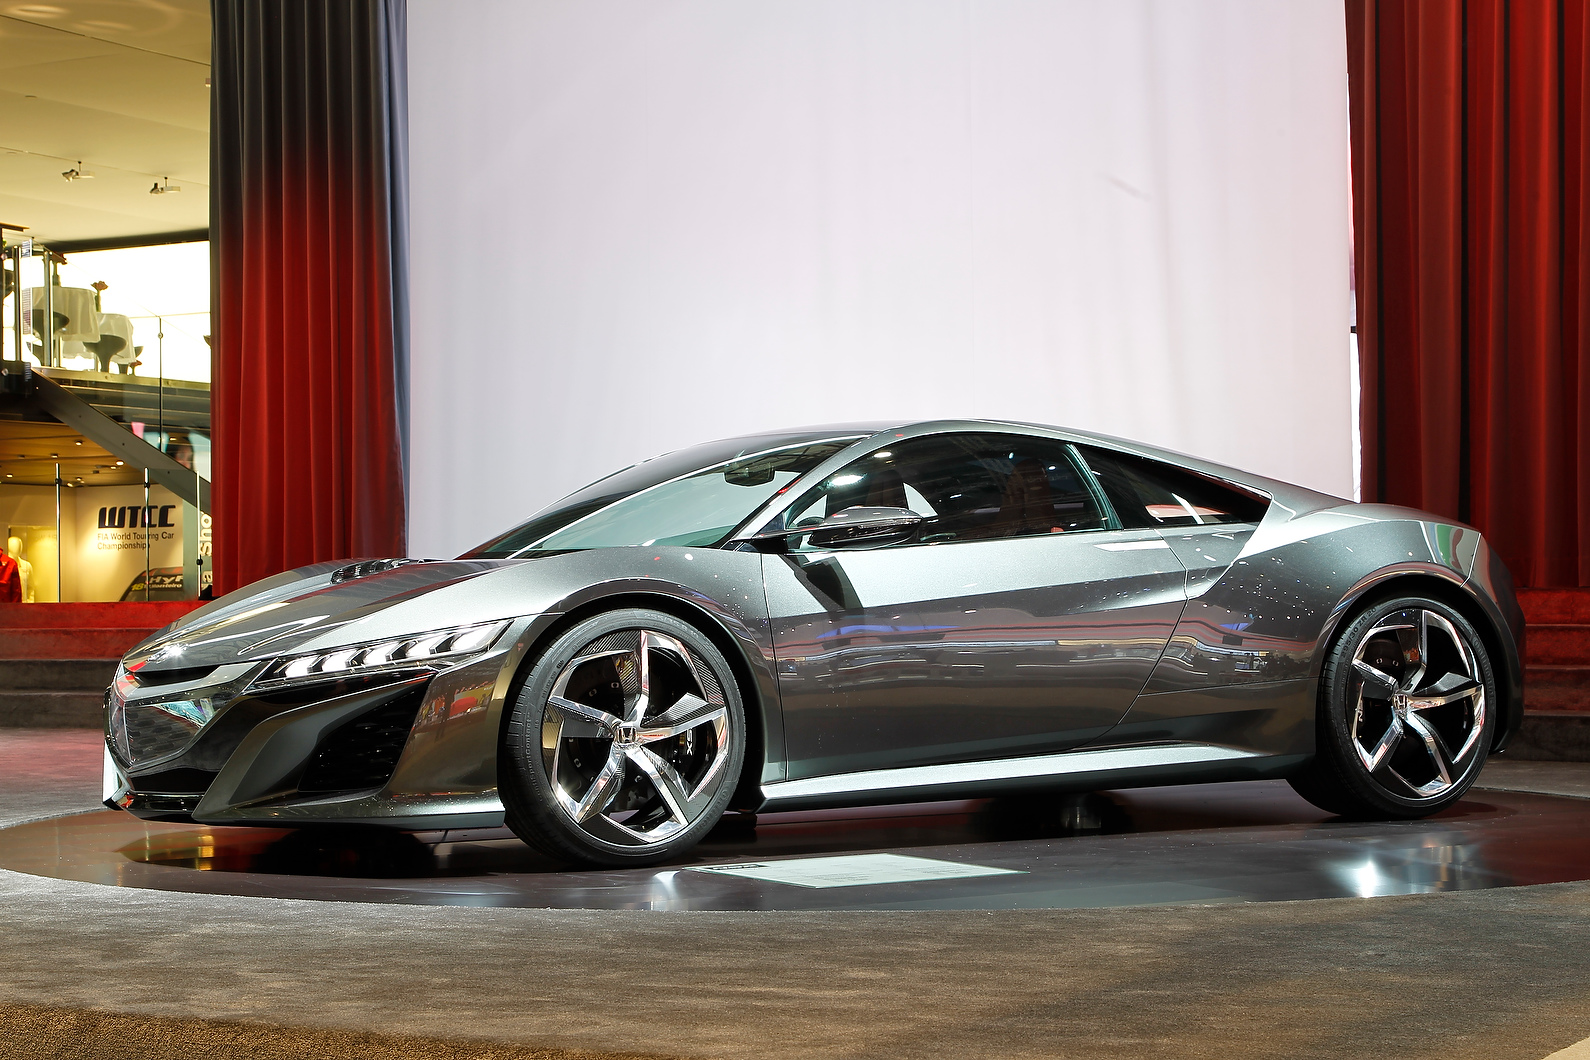 NSX concept badged as a Honda and not an Acura for the first time.